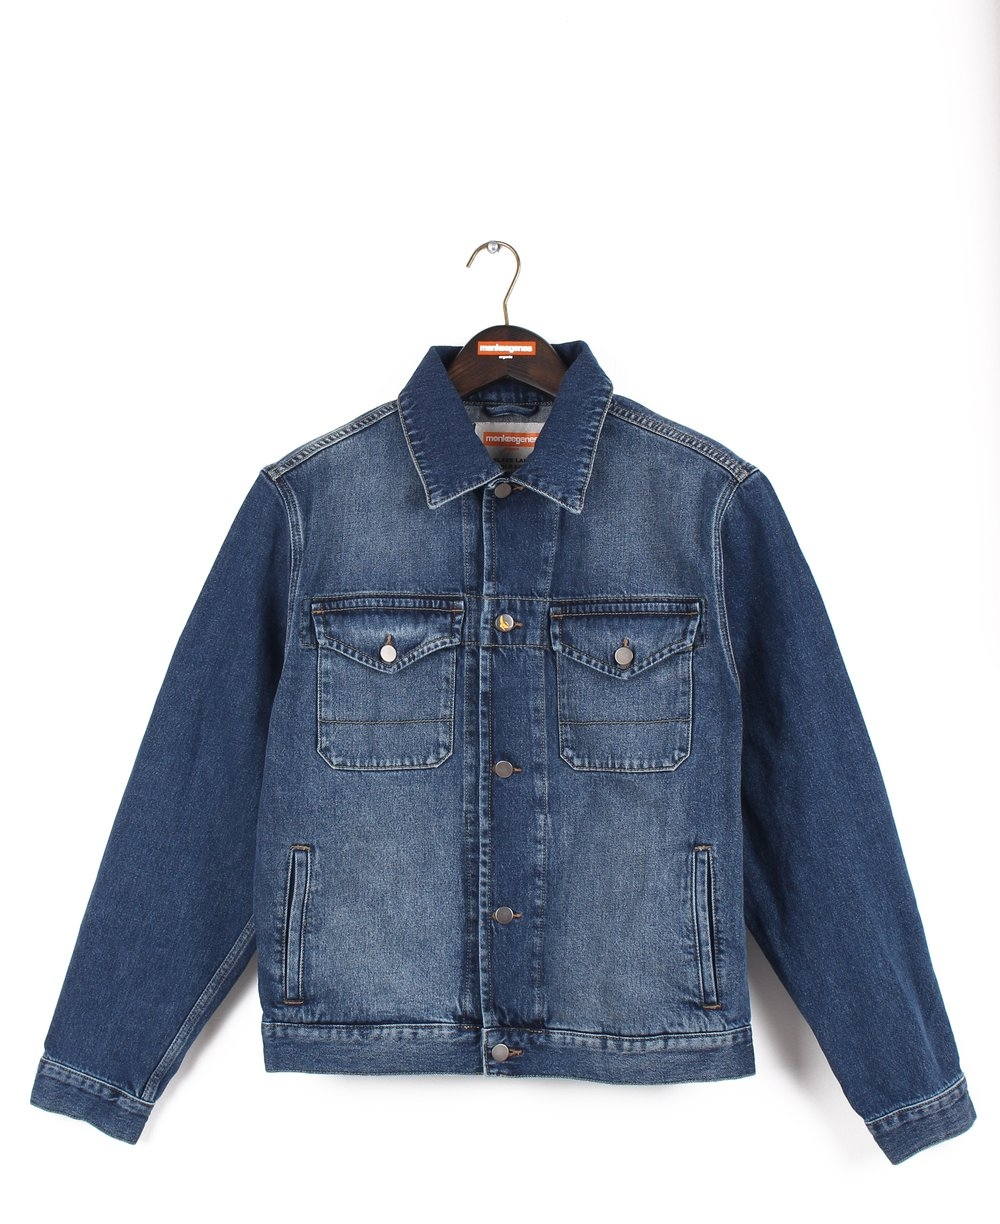 timeless - Organic cotton denim jacket in a dark, vintage wash.Monkee Genes. $80